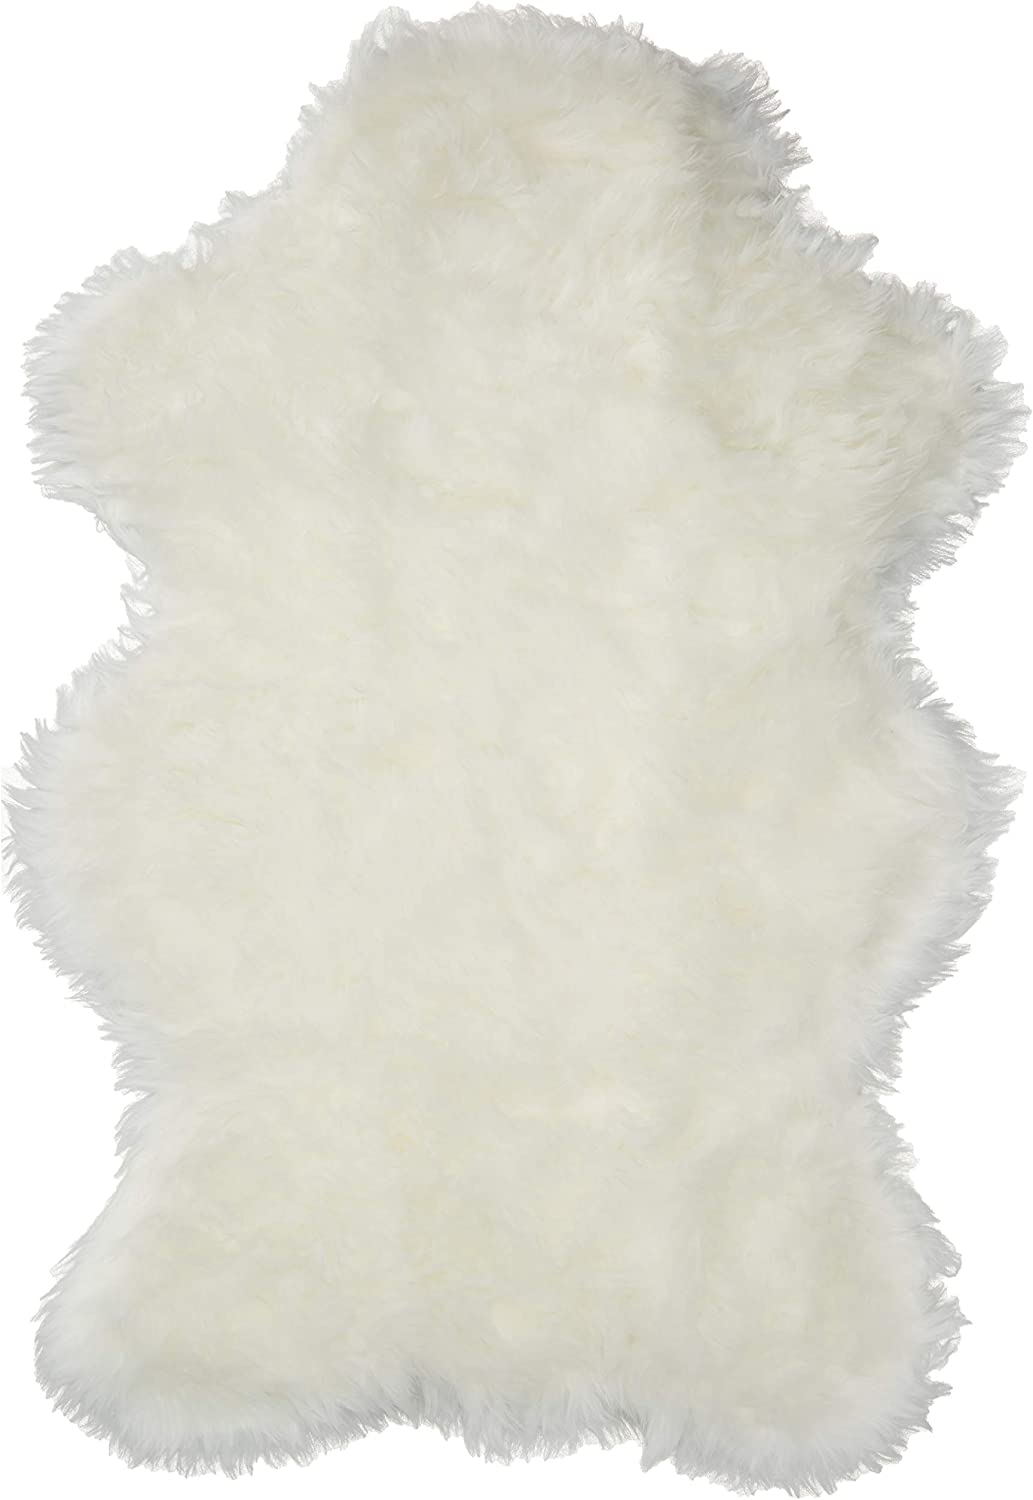 "Walk on Me Classic White Sheepskin/Polar Bear Pelt Shape Rug Faux Fur Rugs - New from France (2x4, 3x5 & 5x7) (2x4 (Actual 28"" x 43""))"